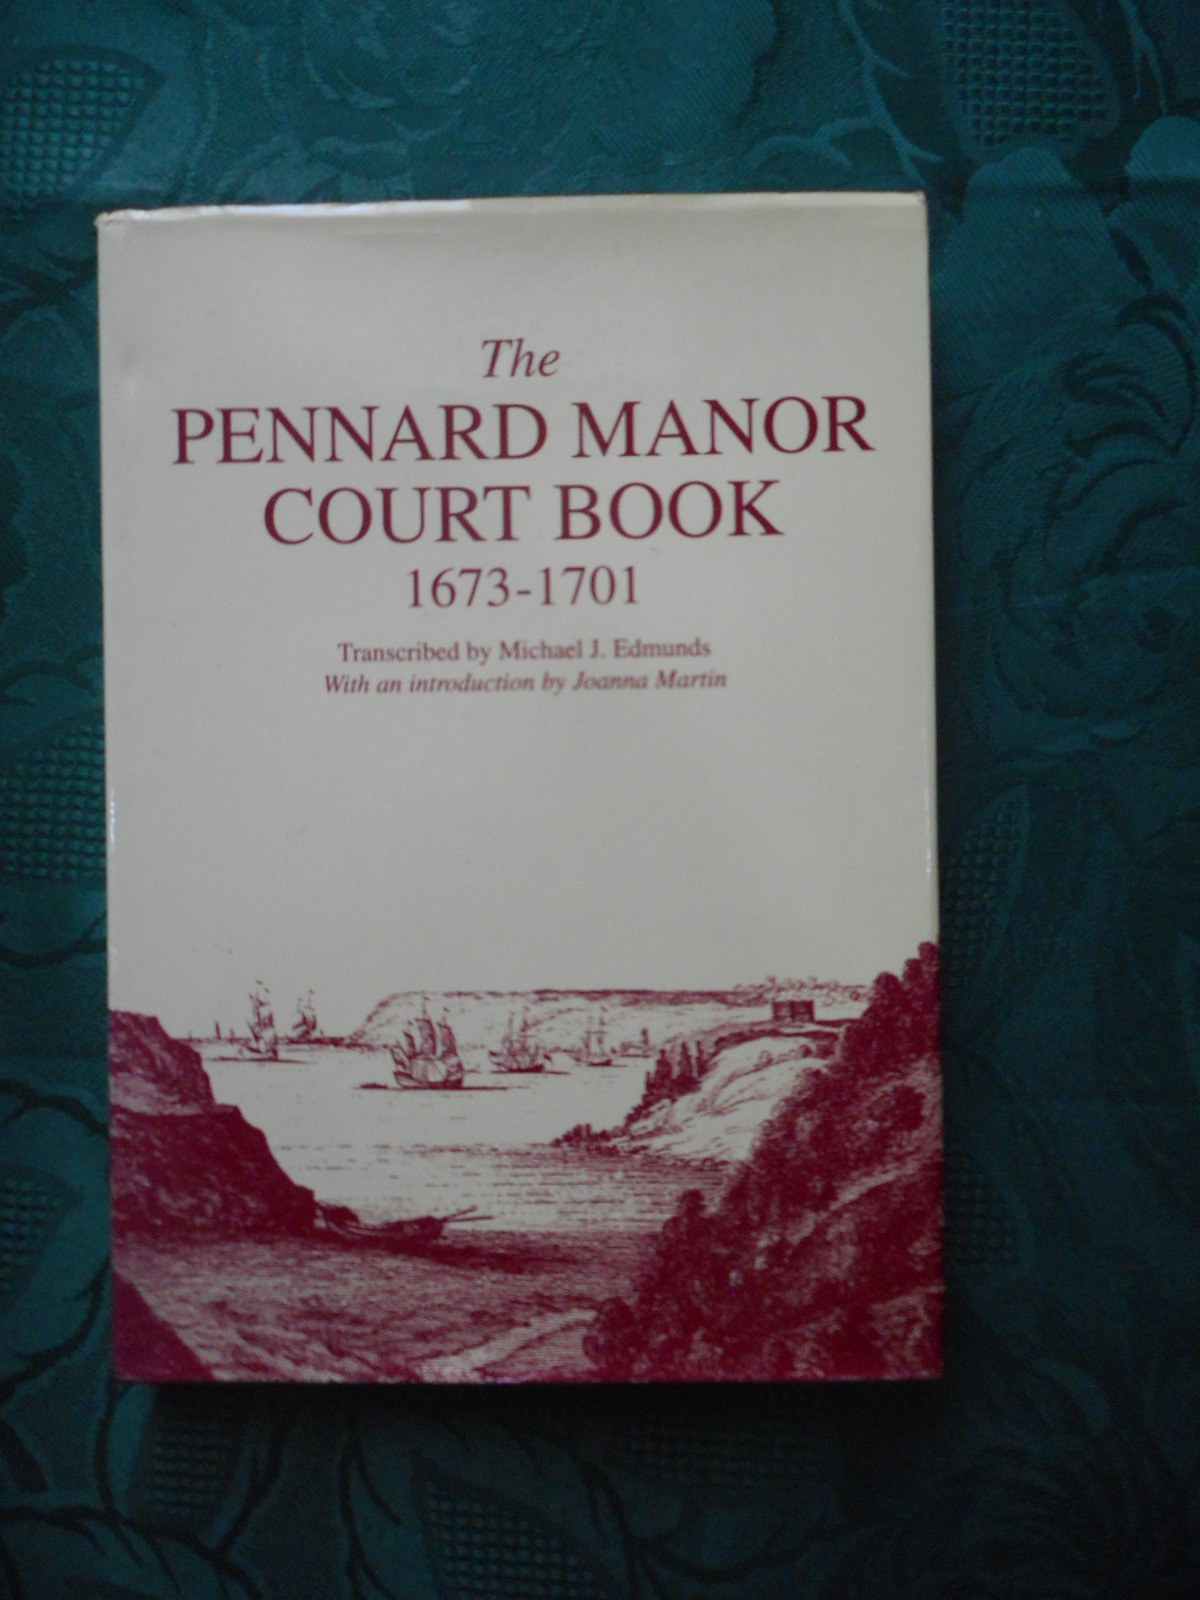 Image for The Pennard Manor Court Book 1673-1701. No 15 in the Series - Publications of the South Wales Record Society